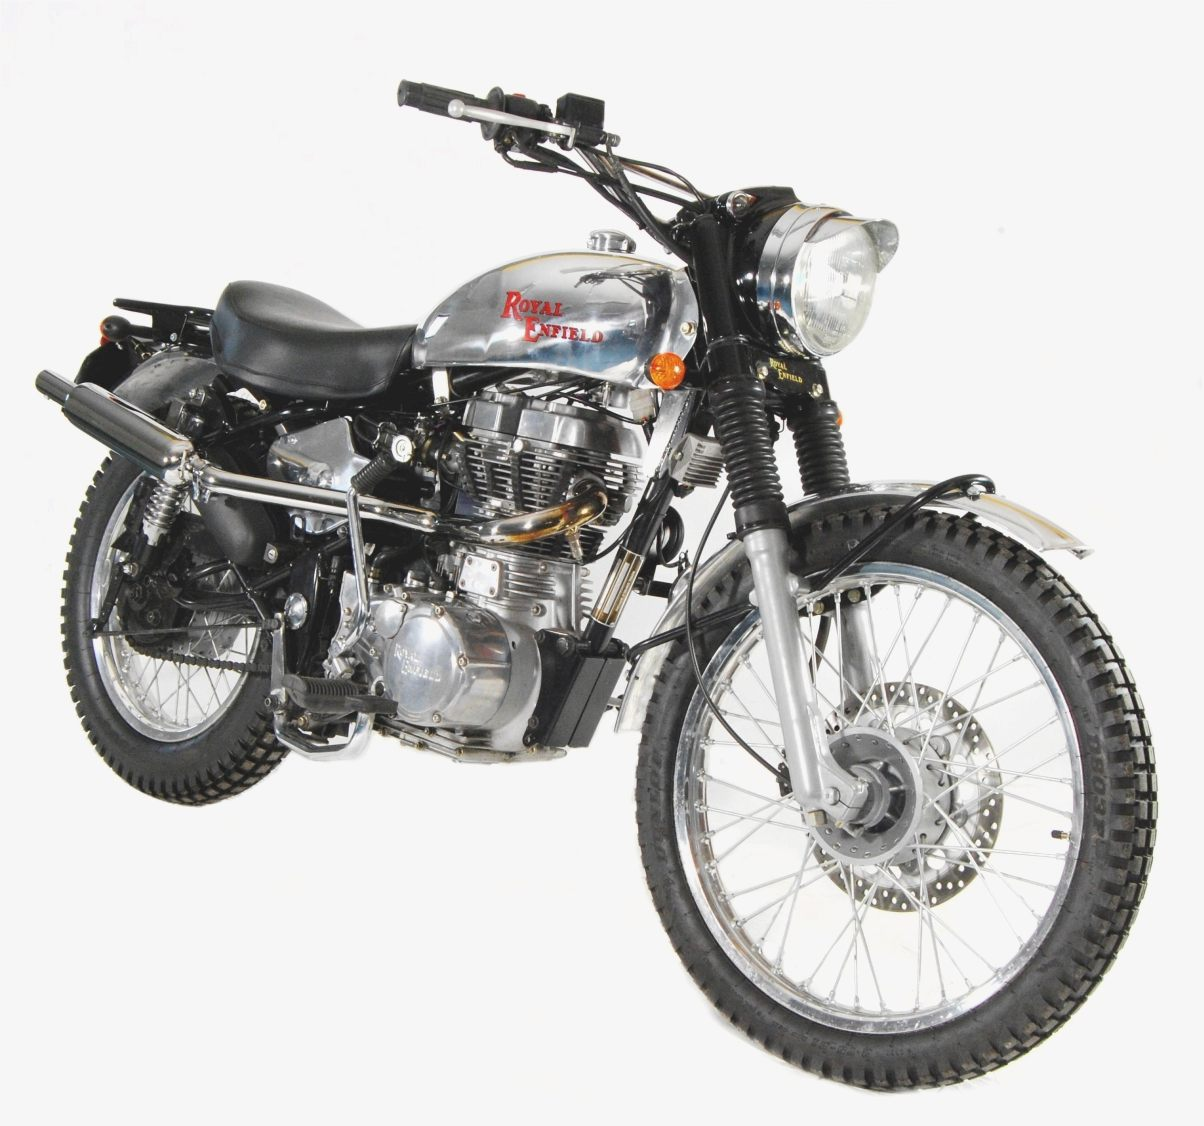 Royal Enfield Bullet 500 Trial Trail 2004 images #126580